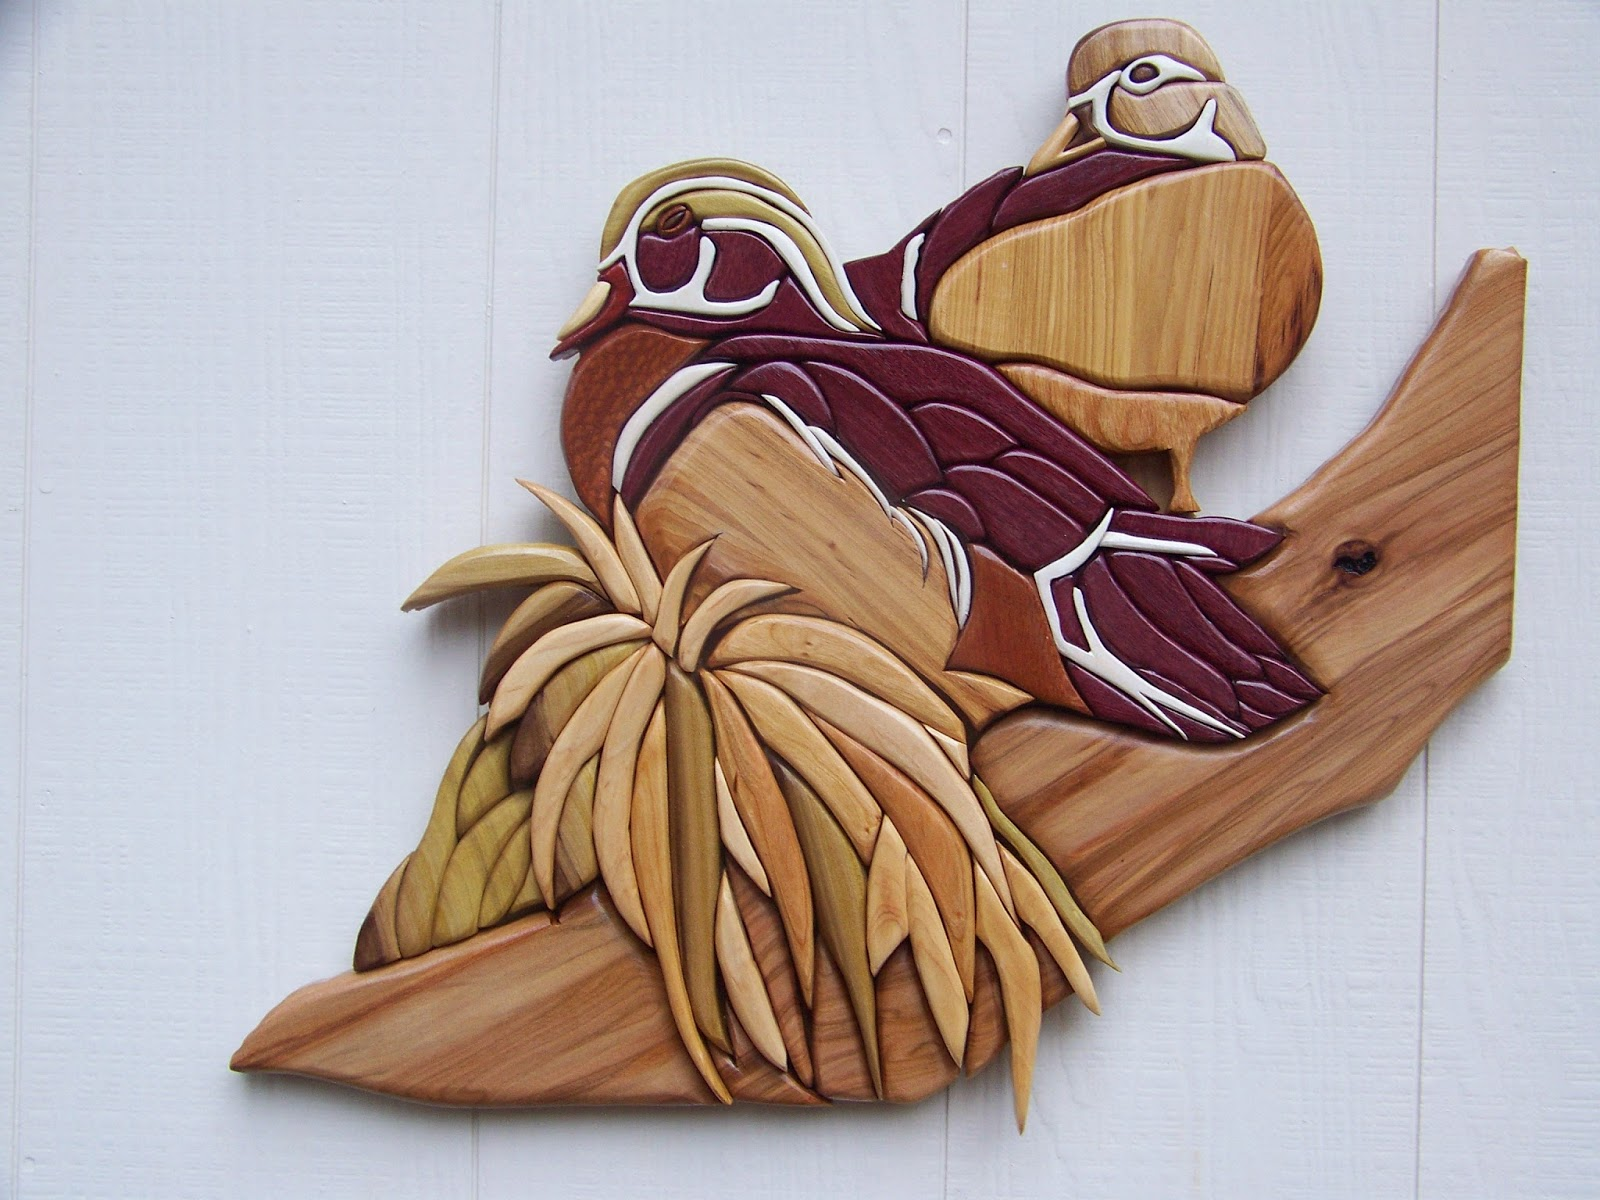 Intarsia Woodworking - Ideas, Plans and Patterns on Pinterest | Intarsia Wood, Intarsia ...